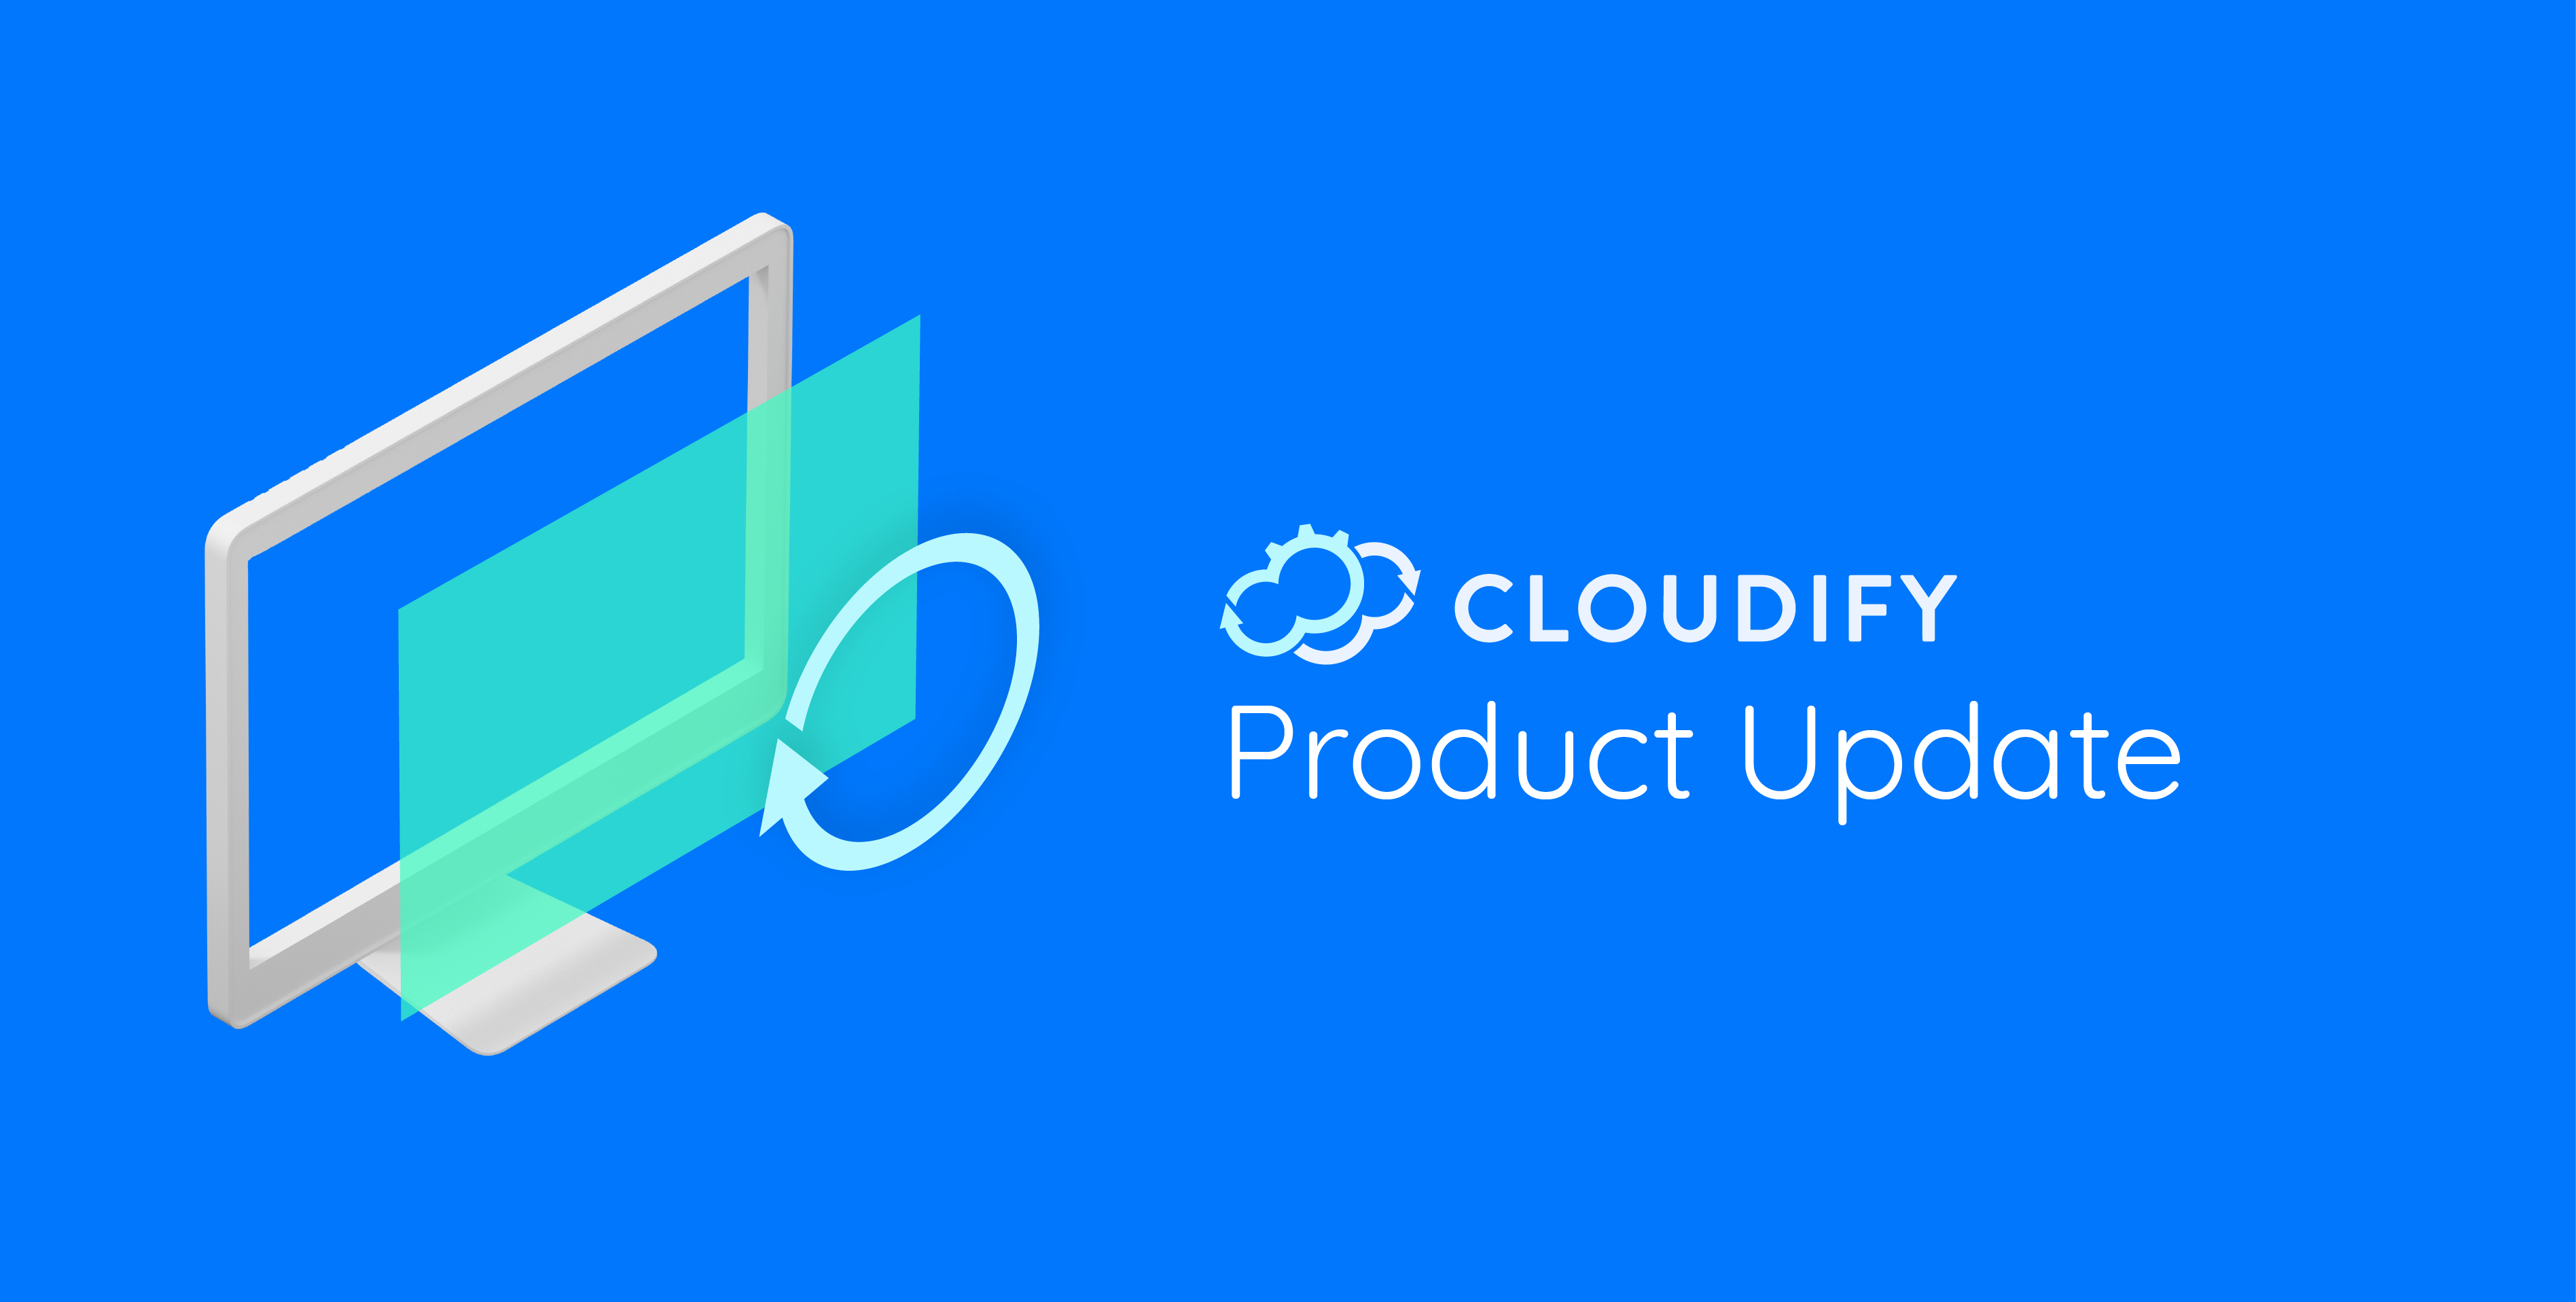 Cloudify-Product-Update_Product-update-blog-header